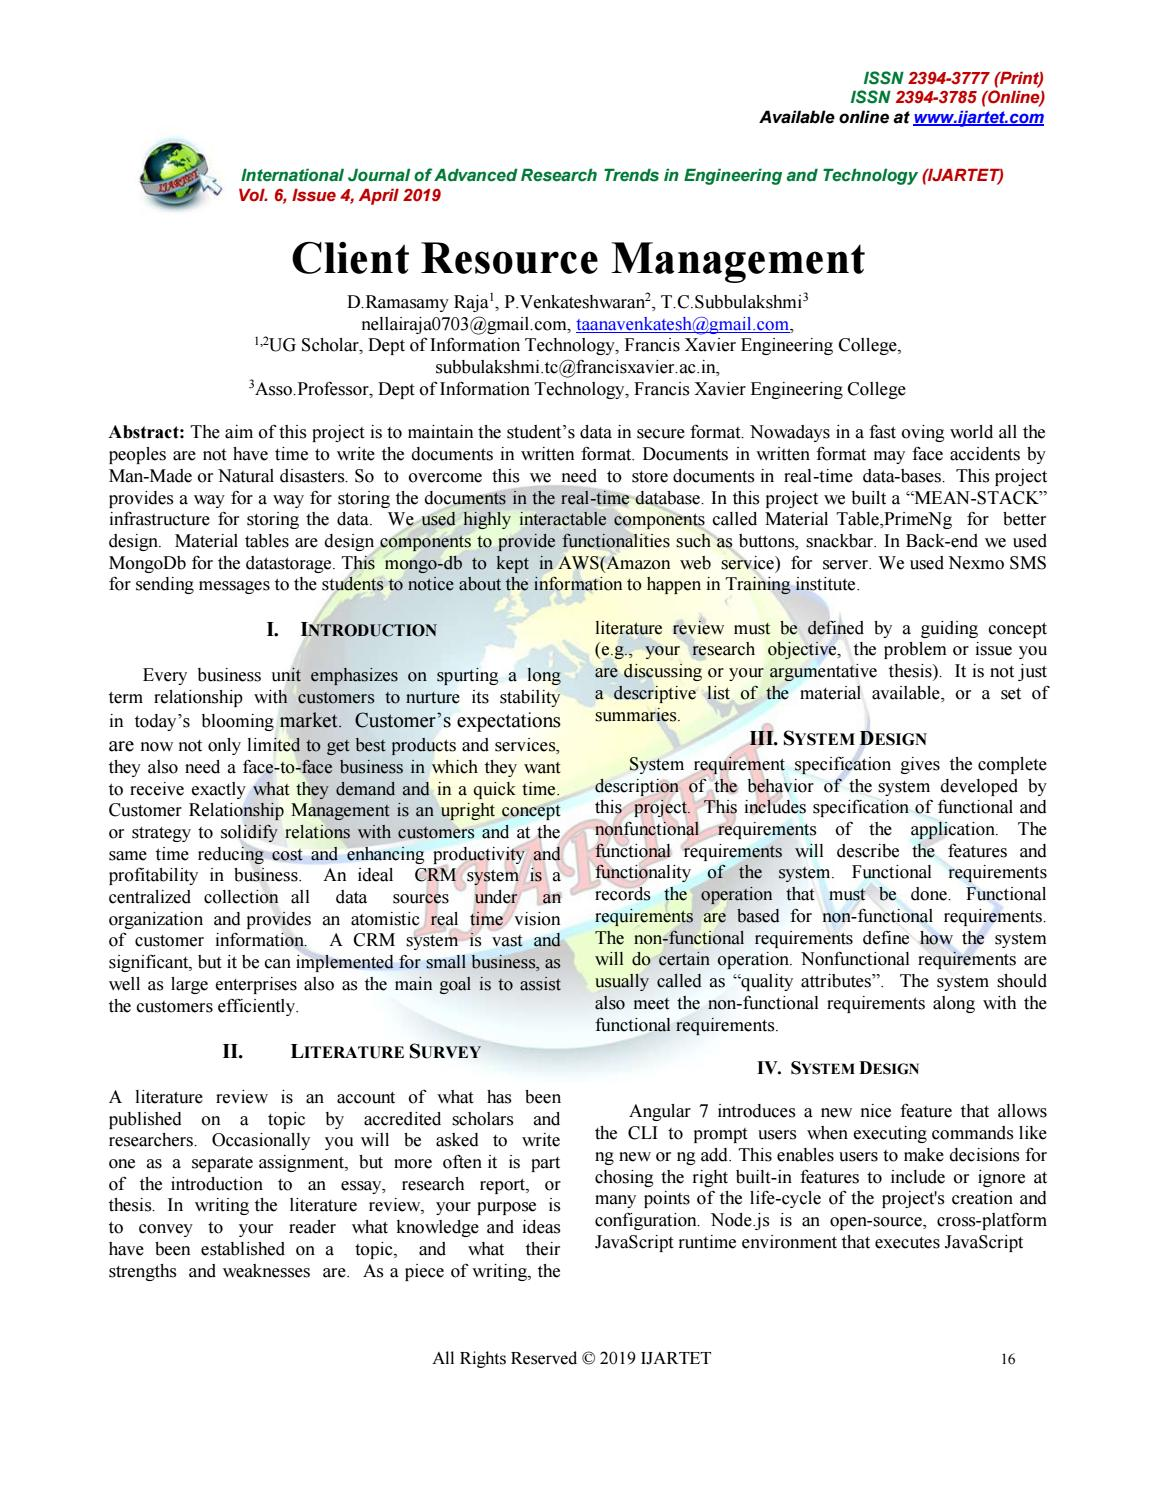 Client Resource Management by IJARTET - issuu